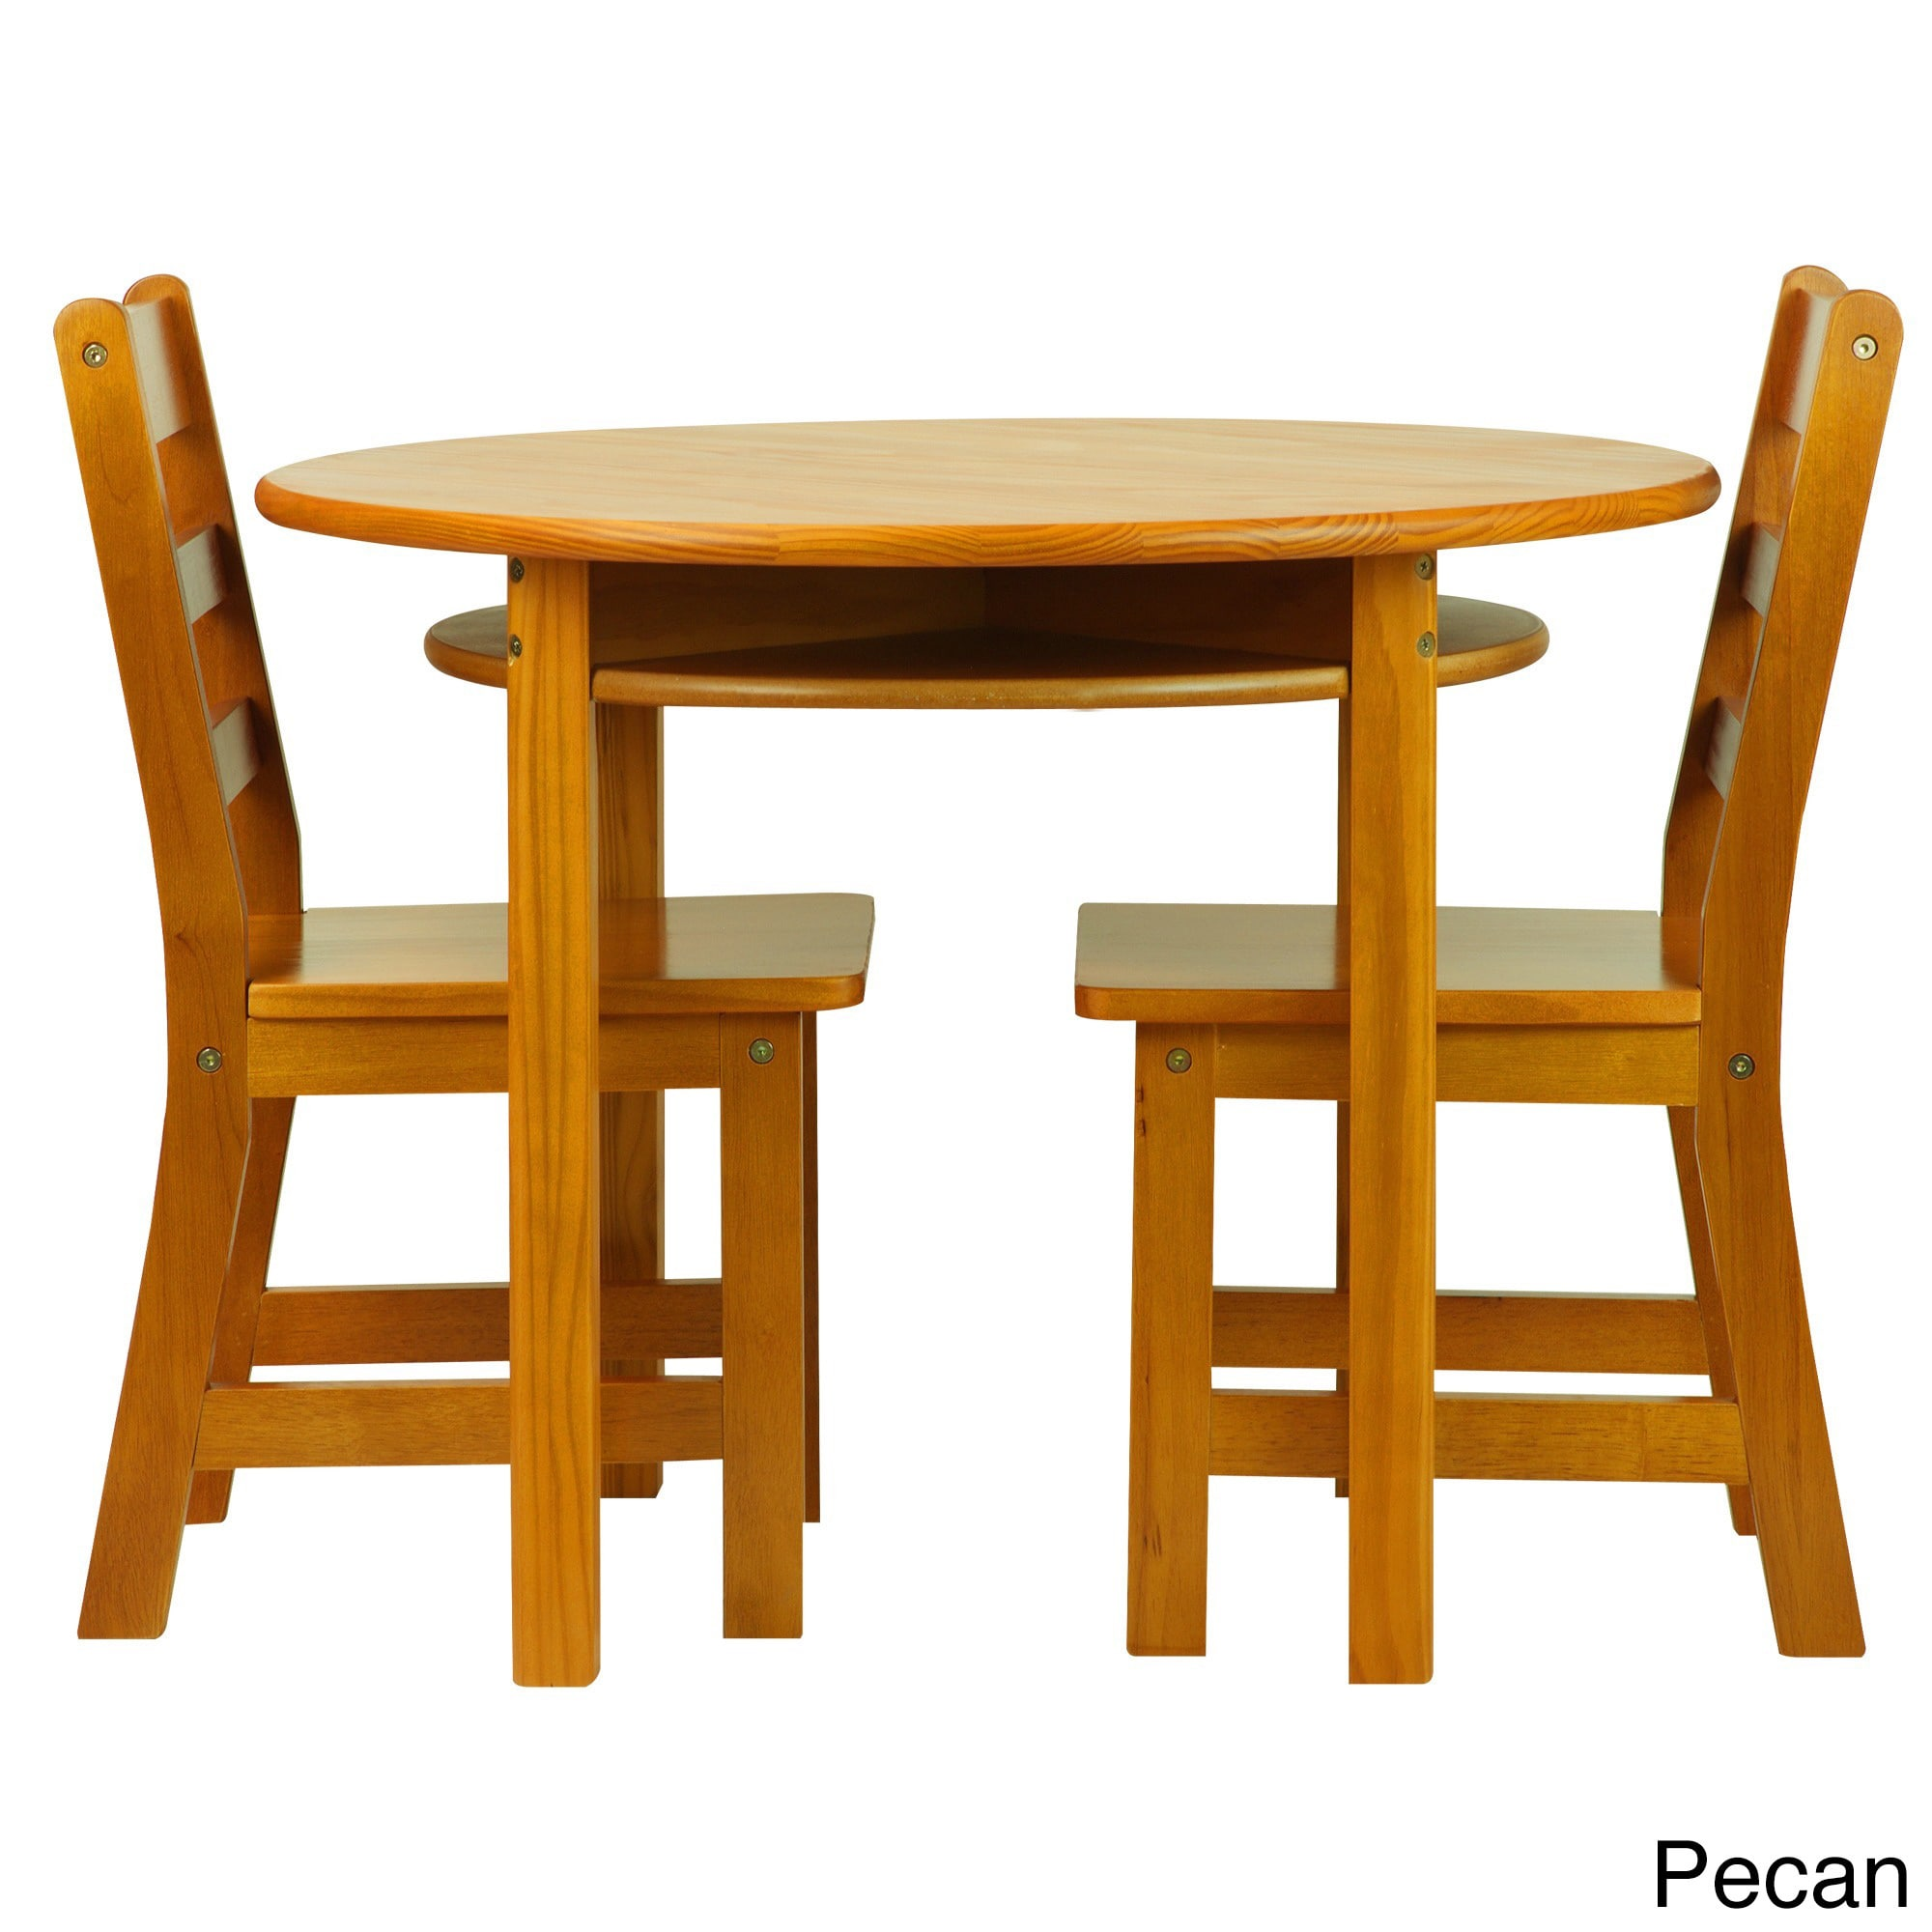 Childrens Round Table and Chair Set (Brown - Cherry Finish)